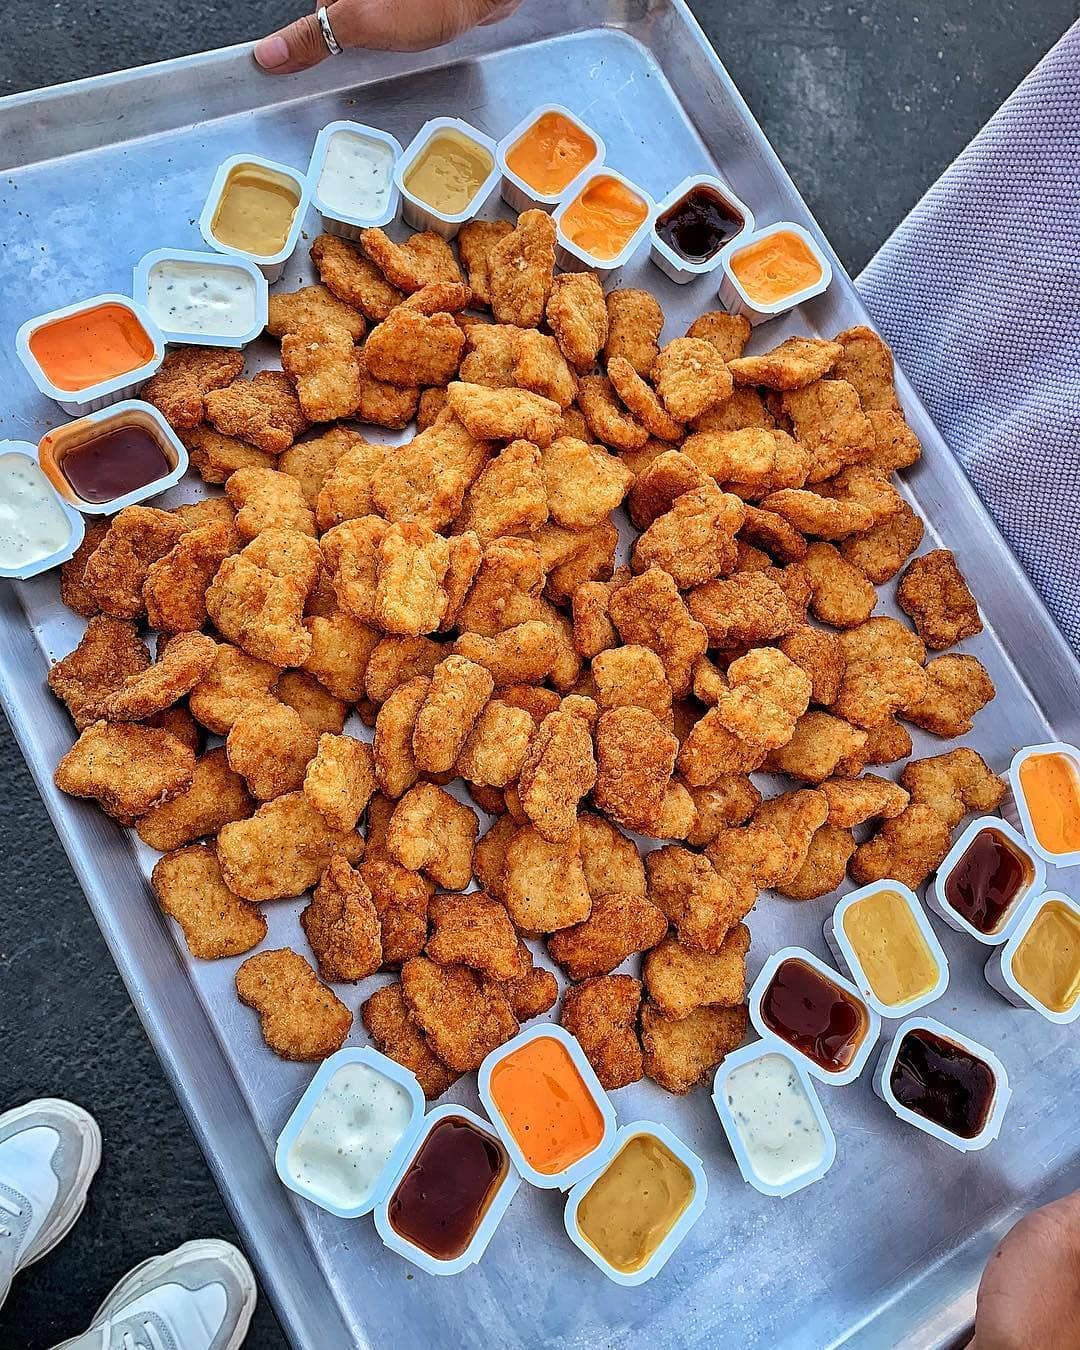 Foodporn Pl Chicken Nuggets For The Whole Squad Tag Your Friends